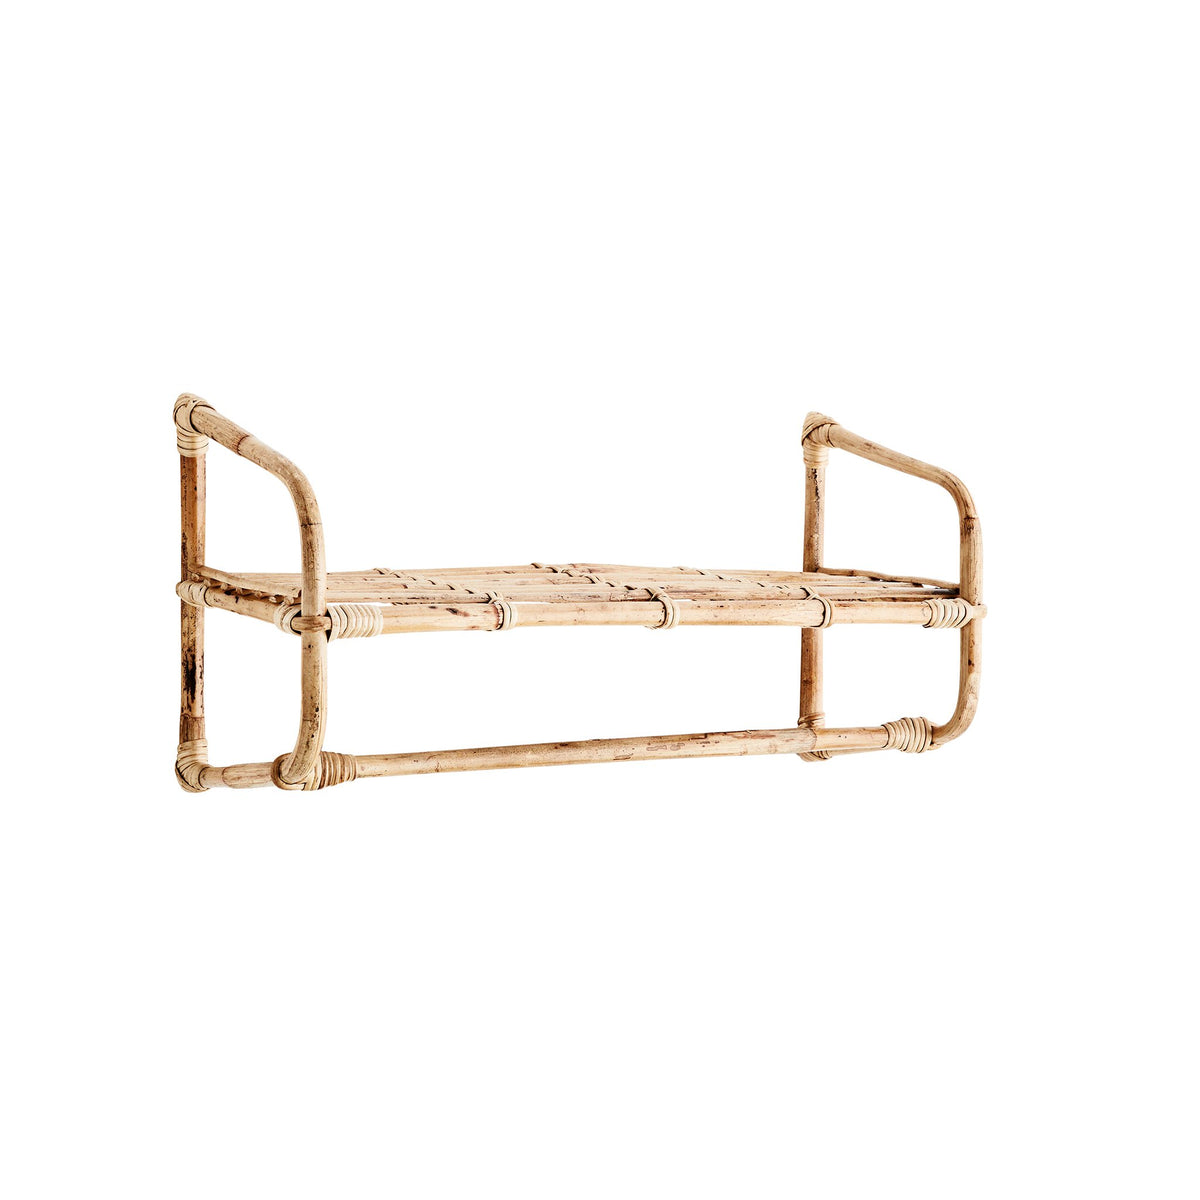 Madam Stoltz Hanging Bamboo Shelf - Scandi Minimal